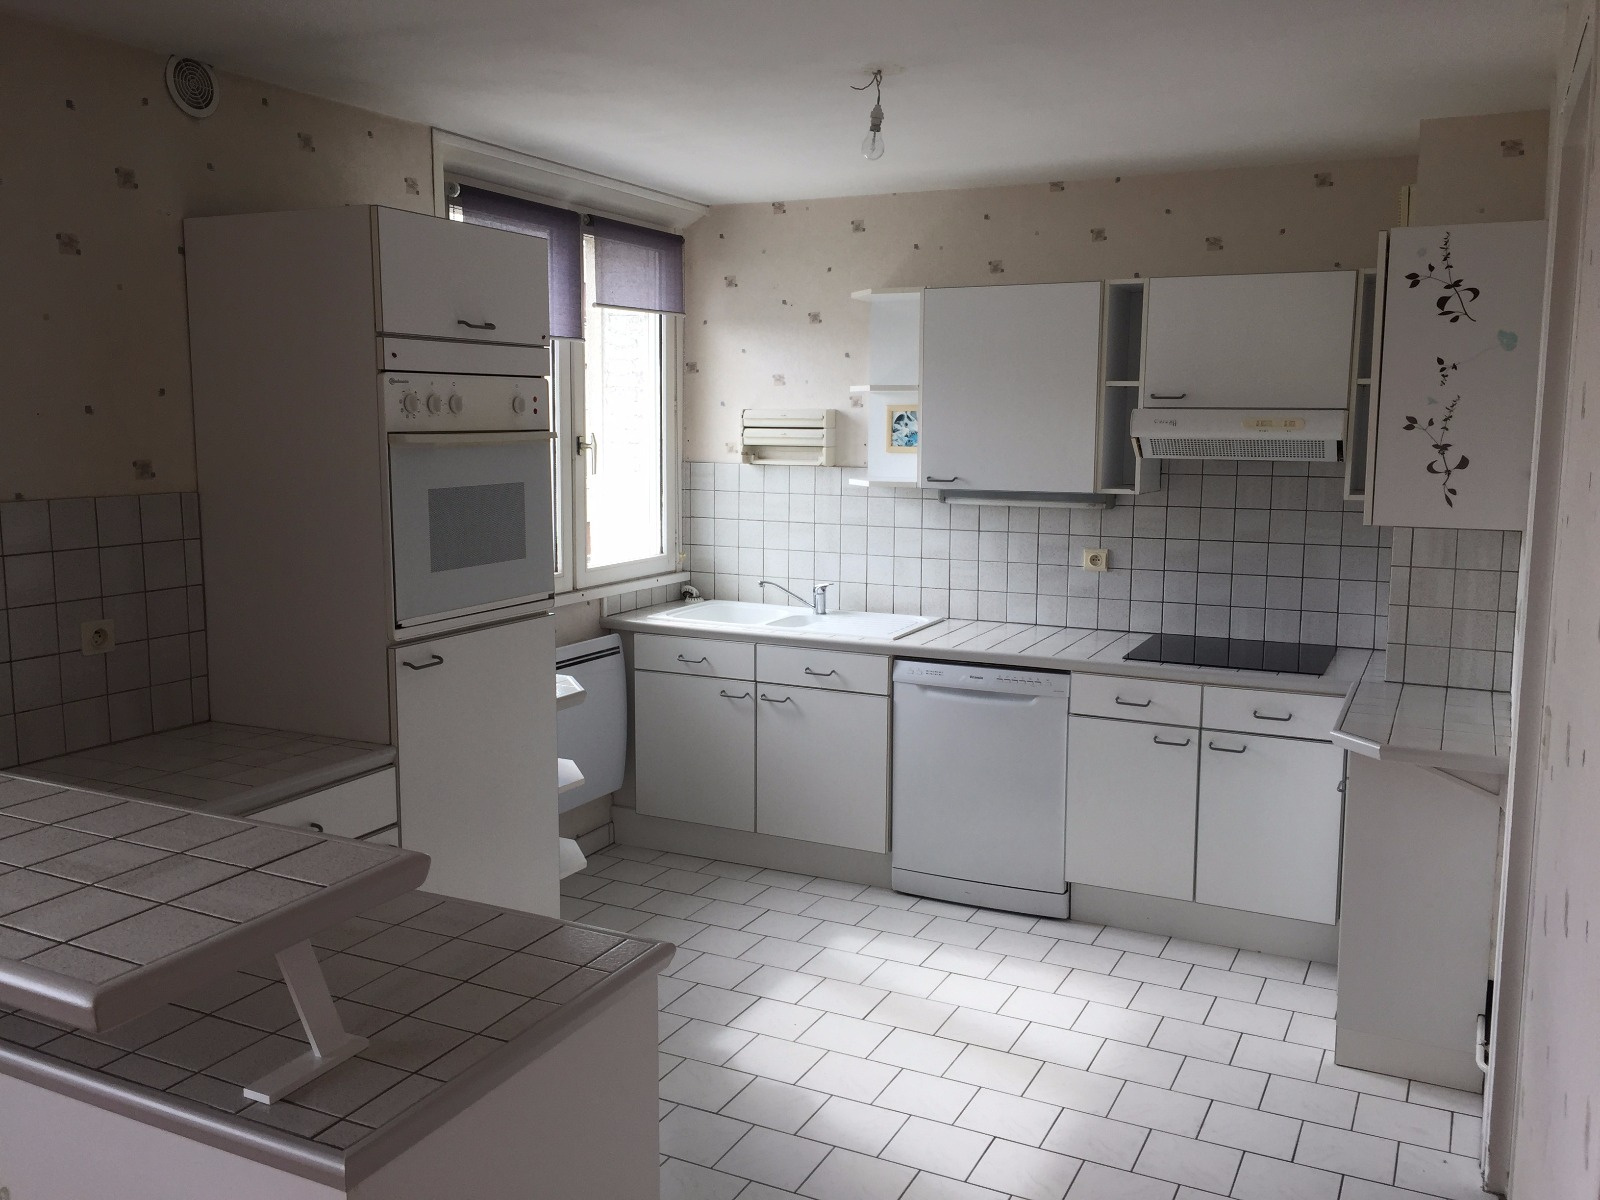 Annonce location appartement rethel 08300 78 m 595 for 08300 rethel